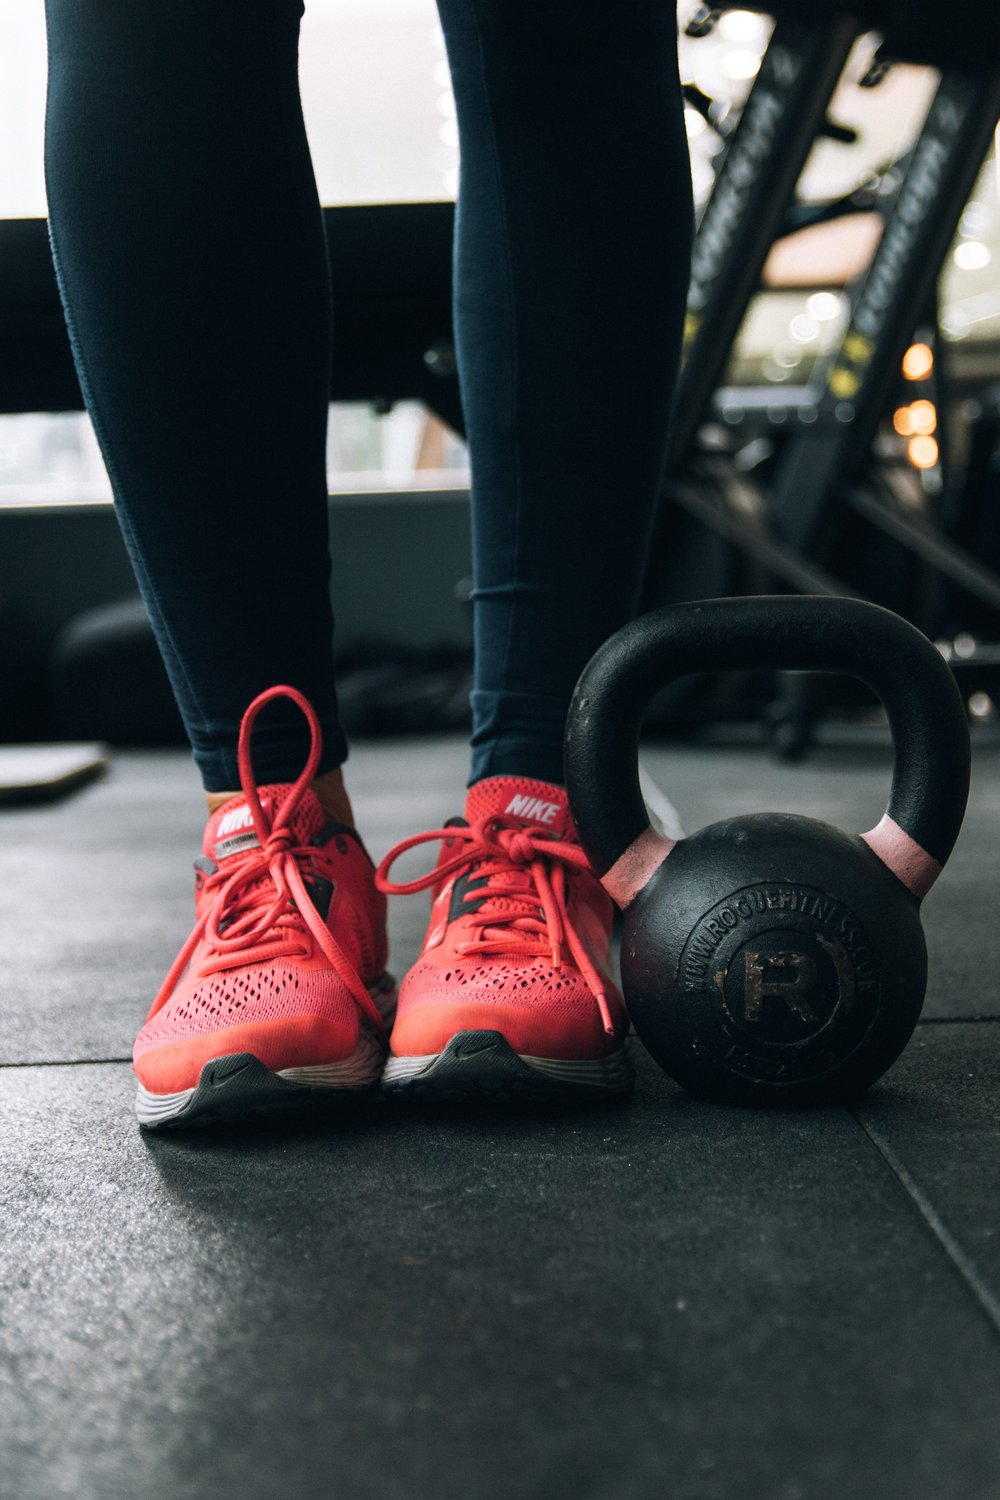 runner lifting kettlebell